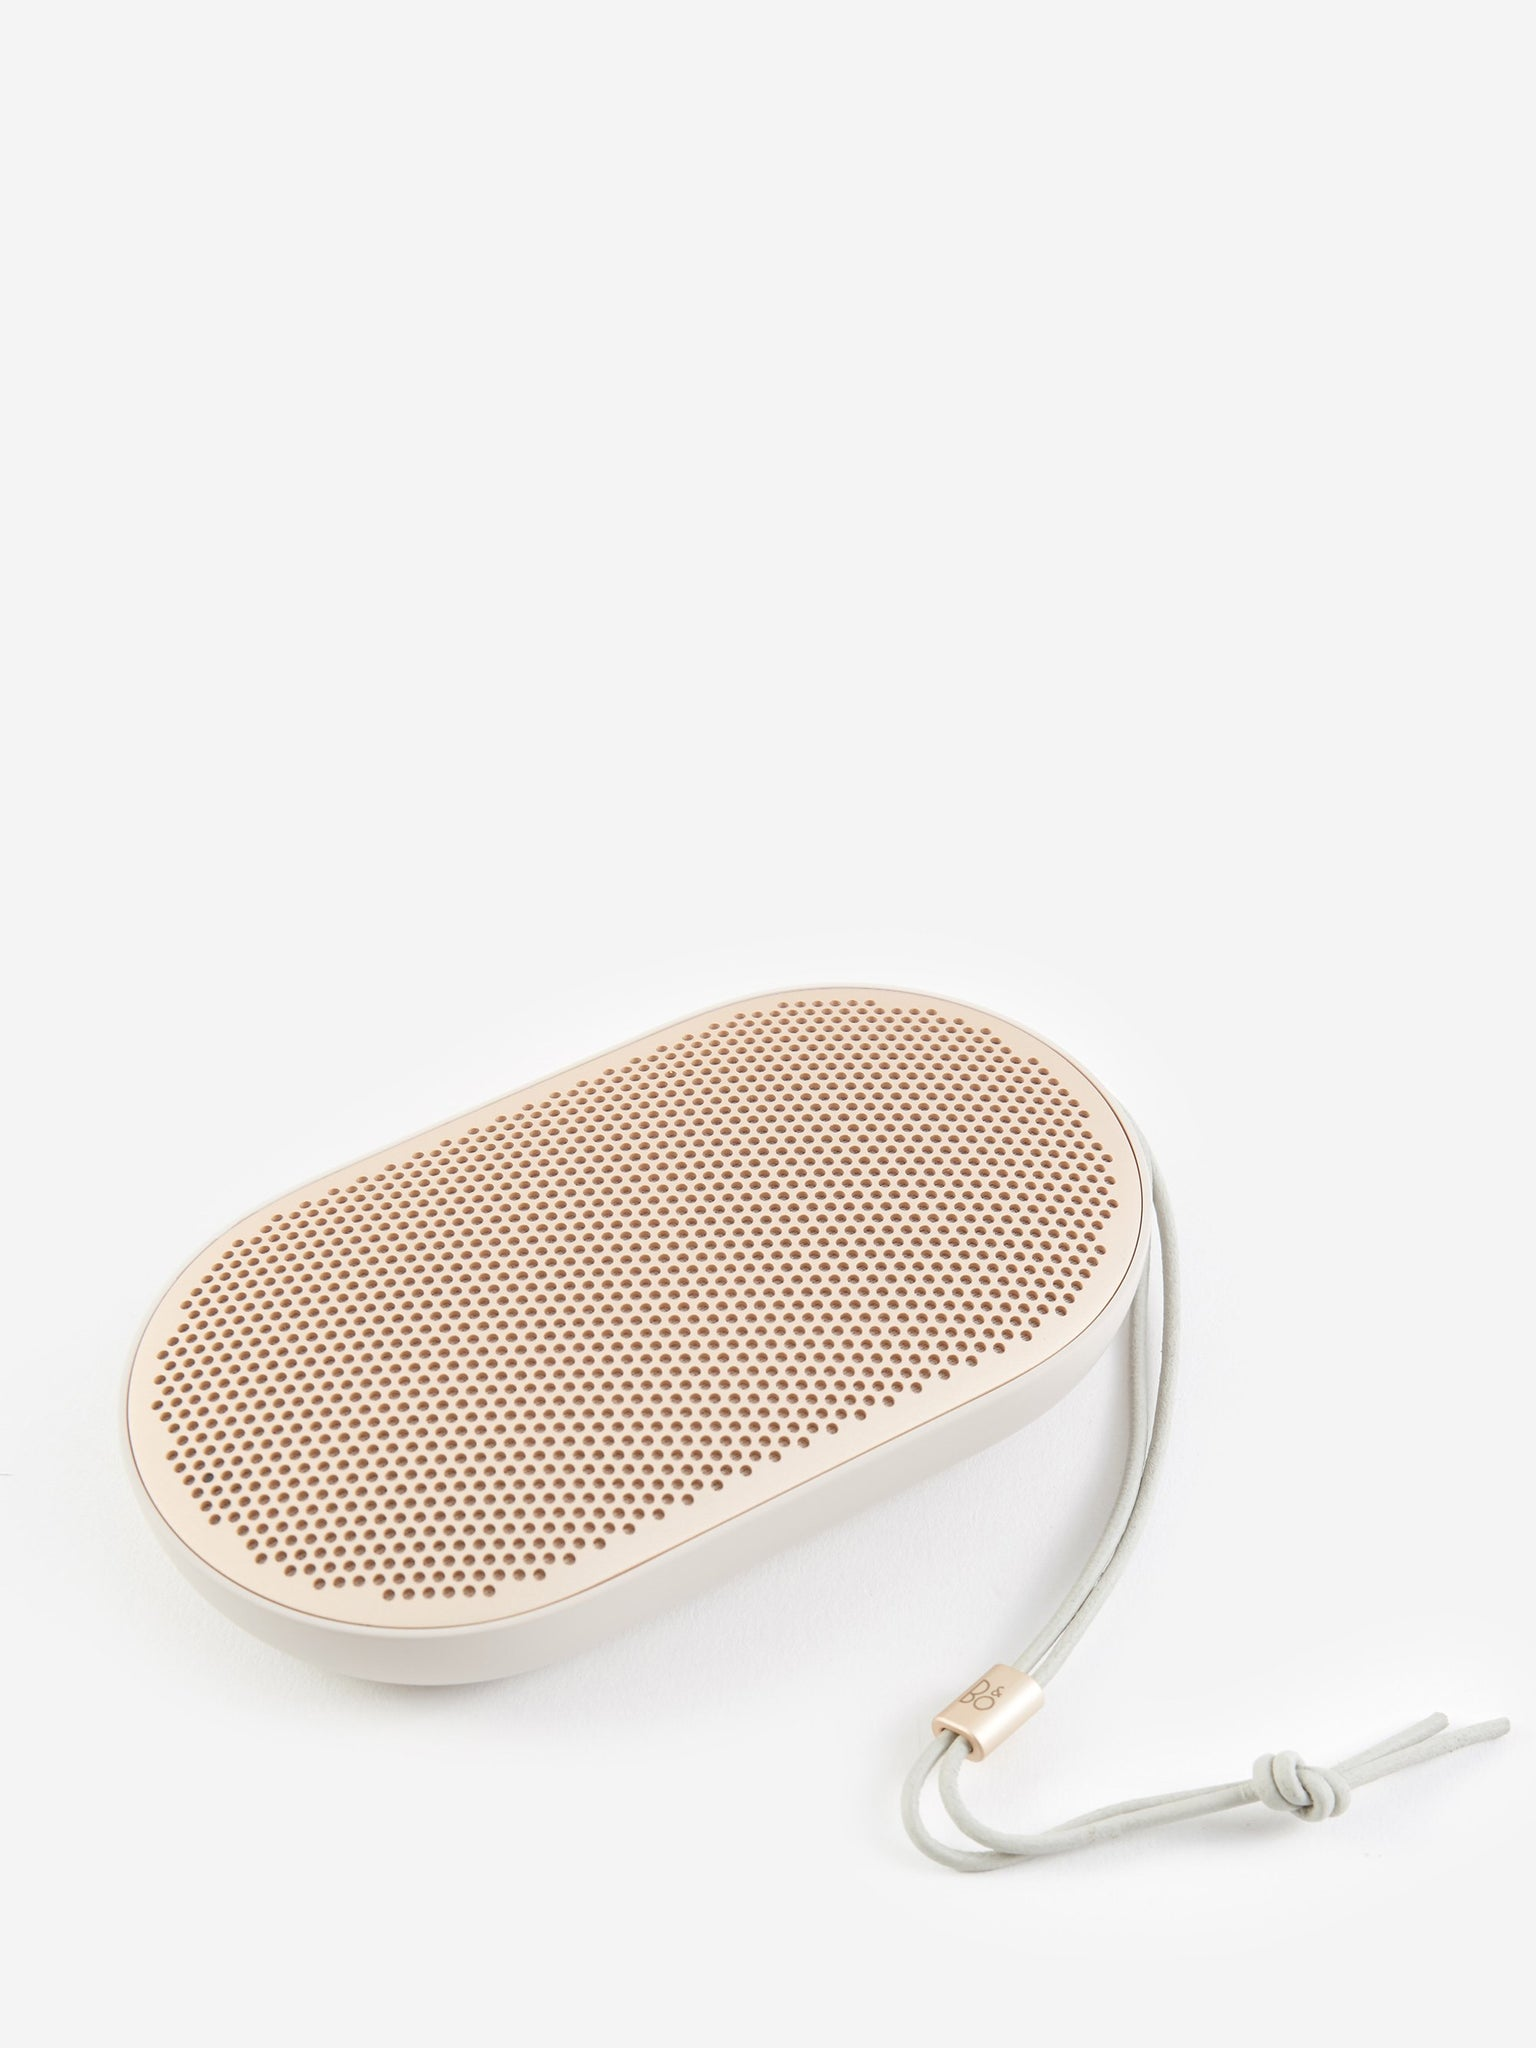 B&O PLAY P2 Portable Bluetooth Speaker - Sandstone